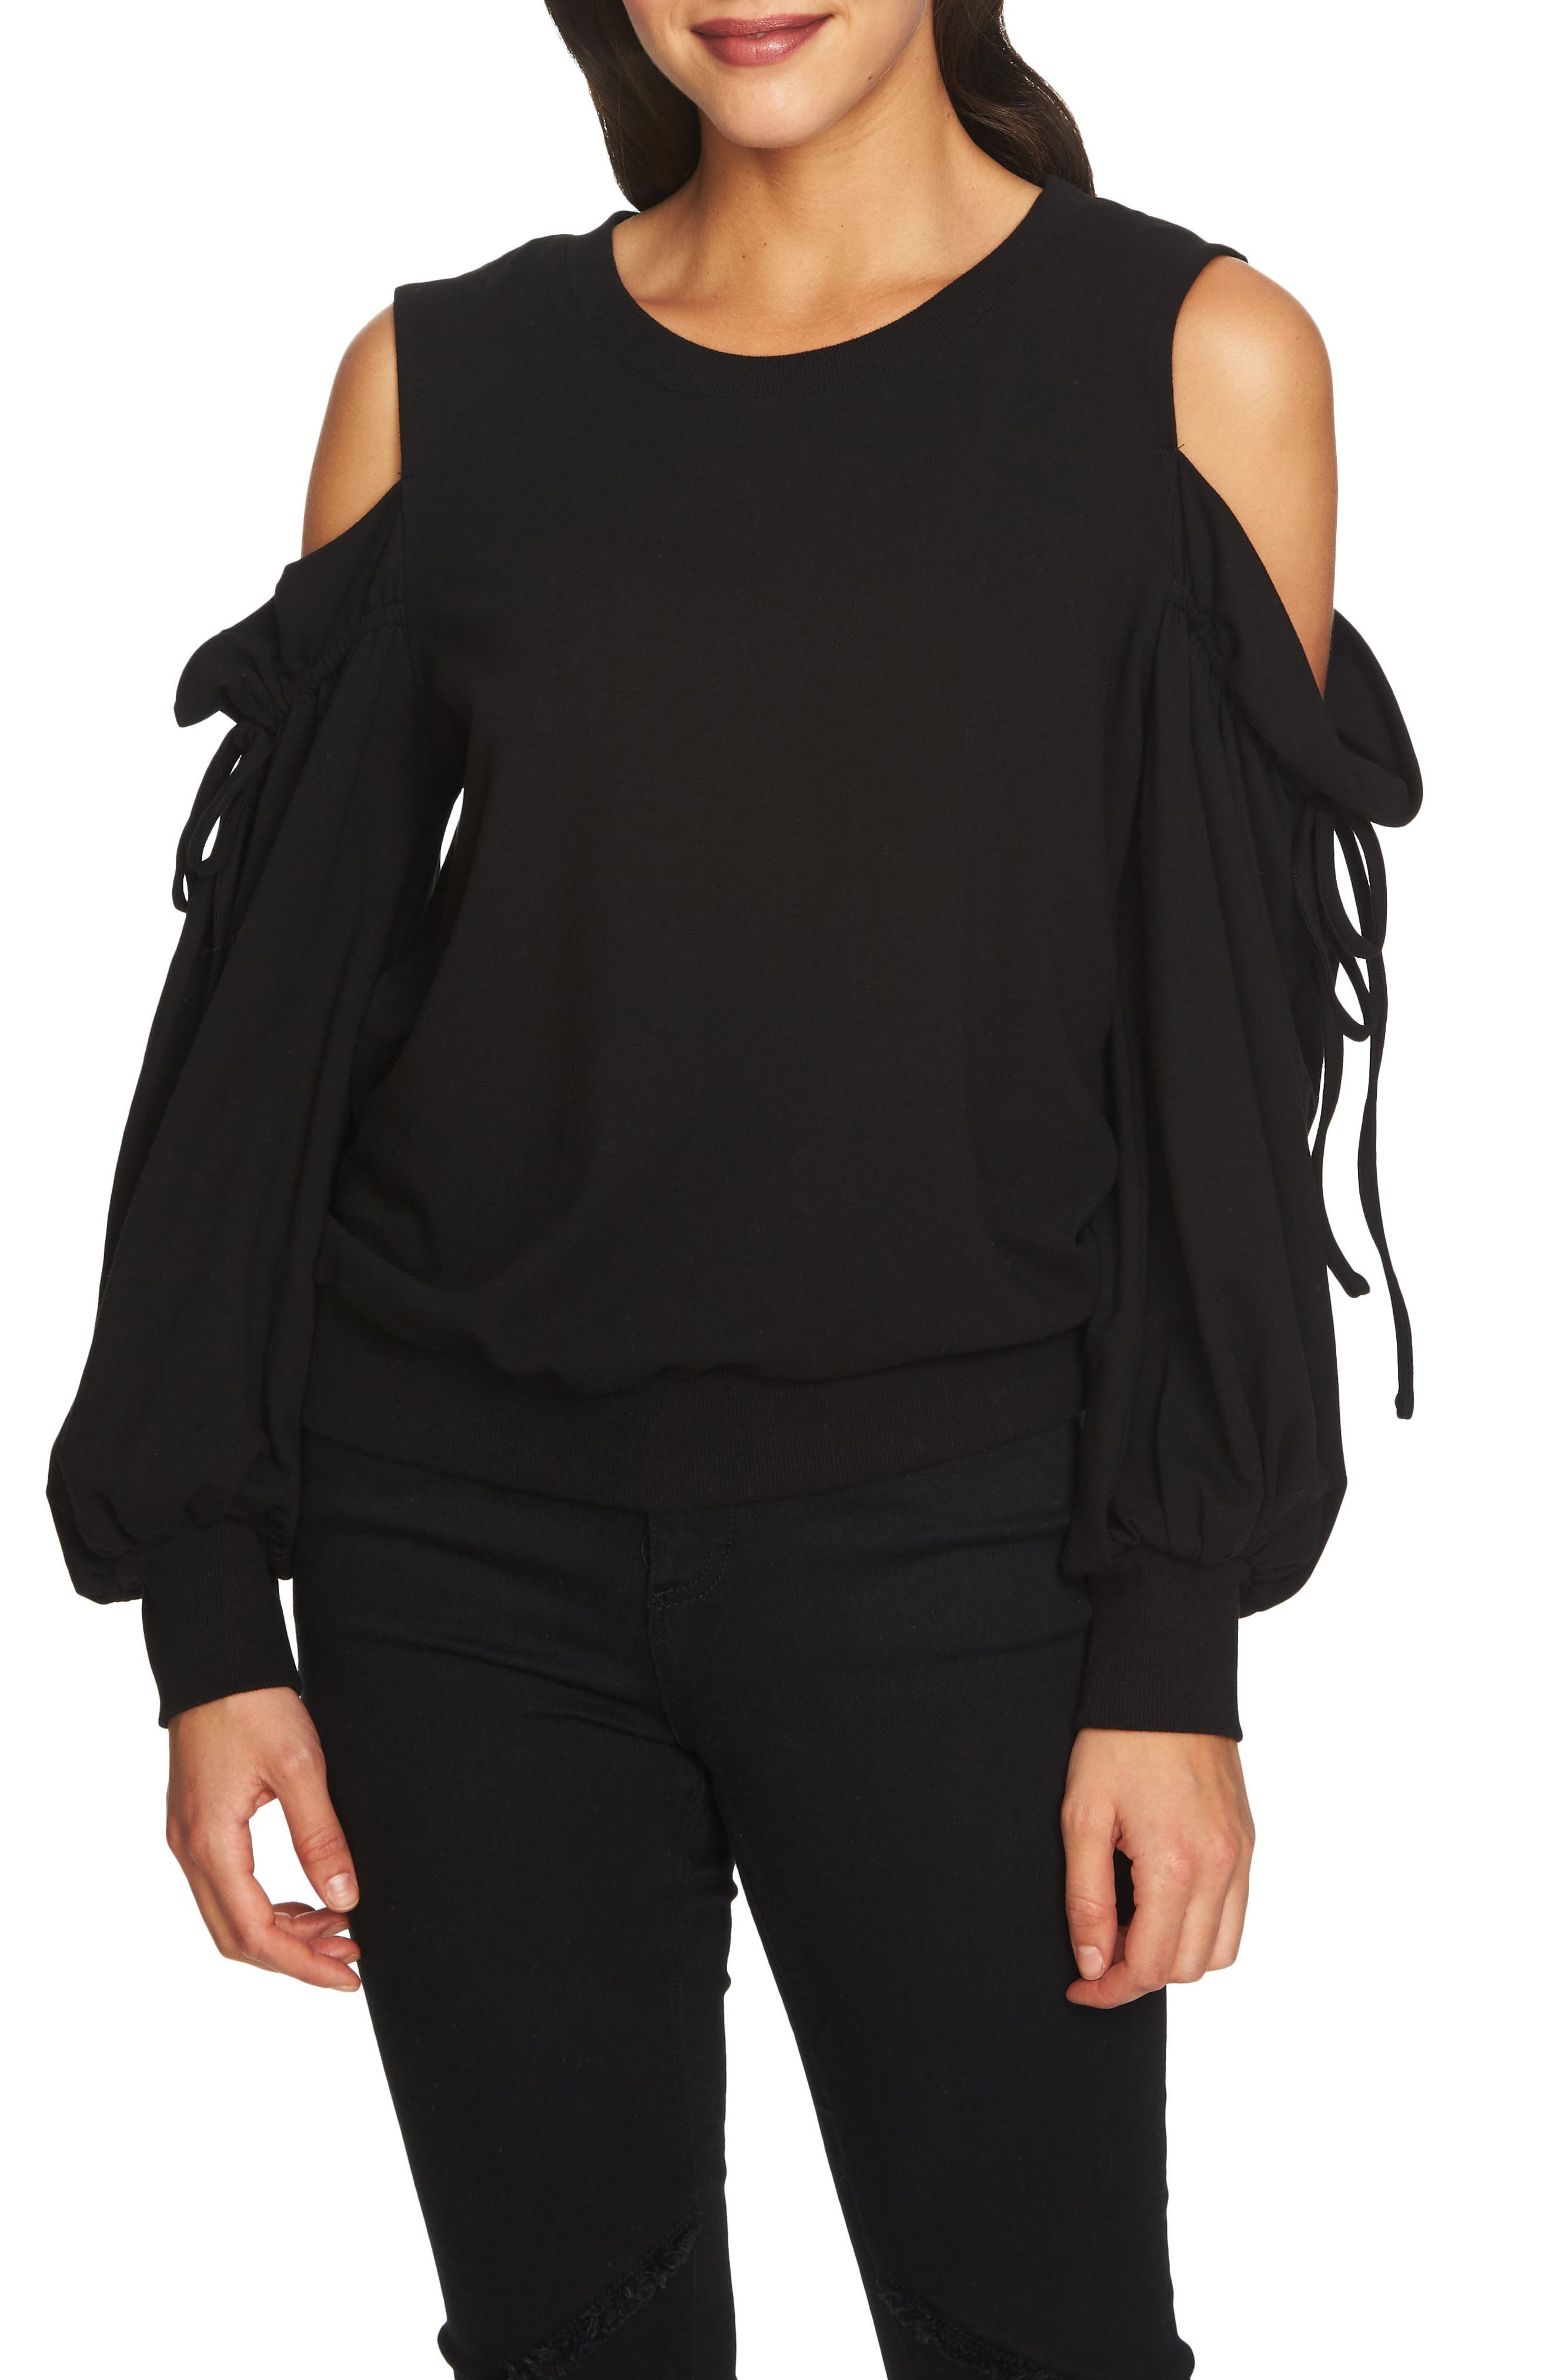 Alternate Image 1 Selected - 1.STATE Cold Shoulder Blouson Sweater